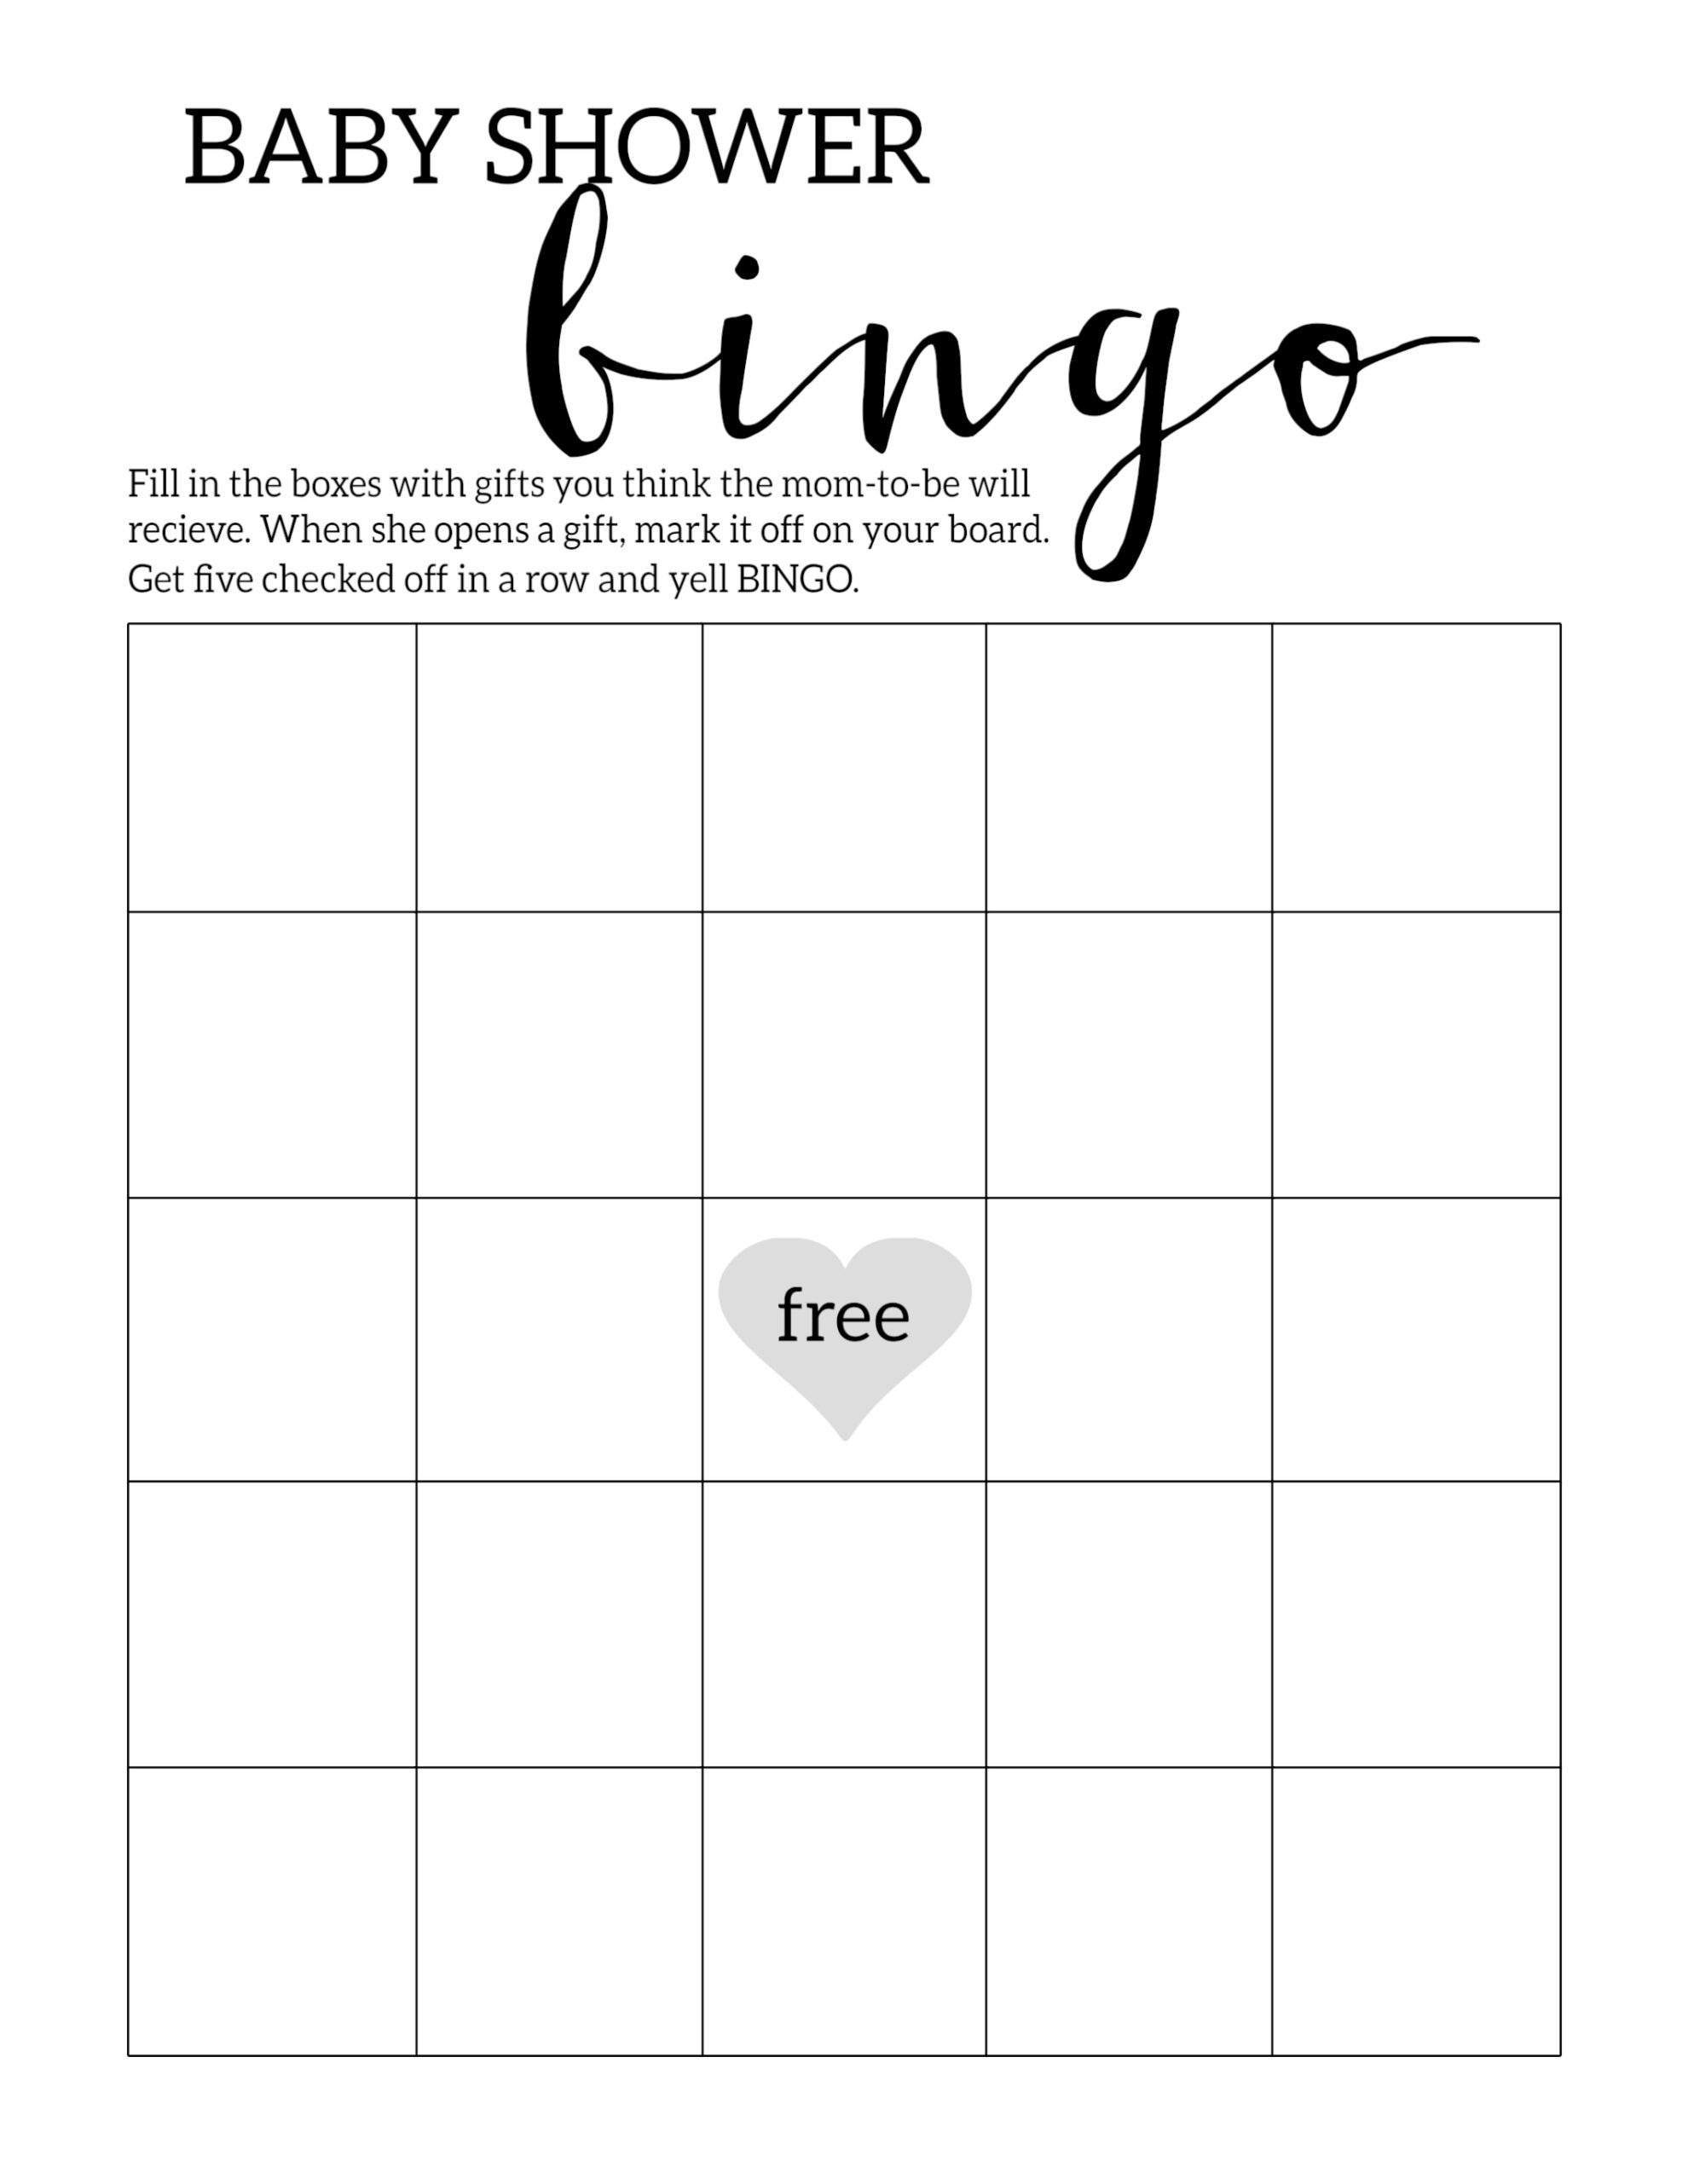 Baby Shower Bingo Printable Cards Template - Paper Trail Design - Printable Bingo Template Free